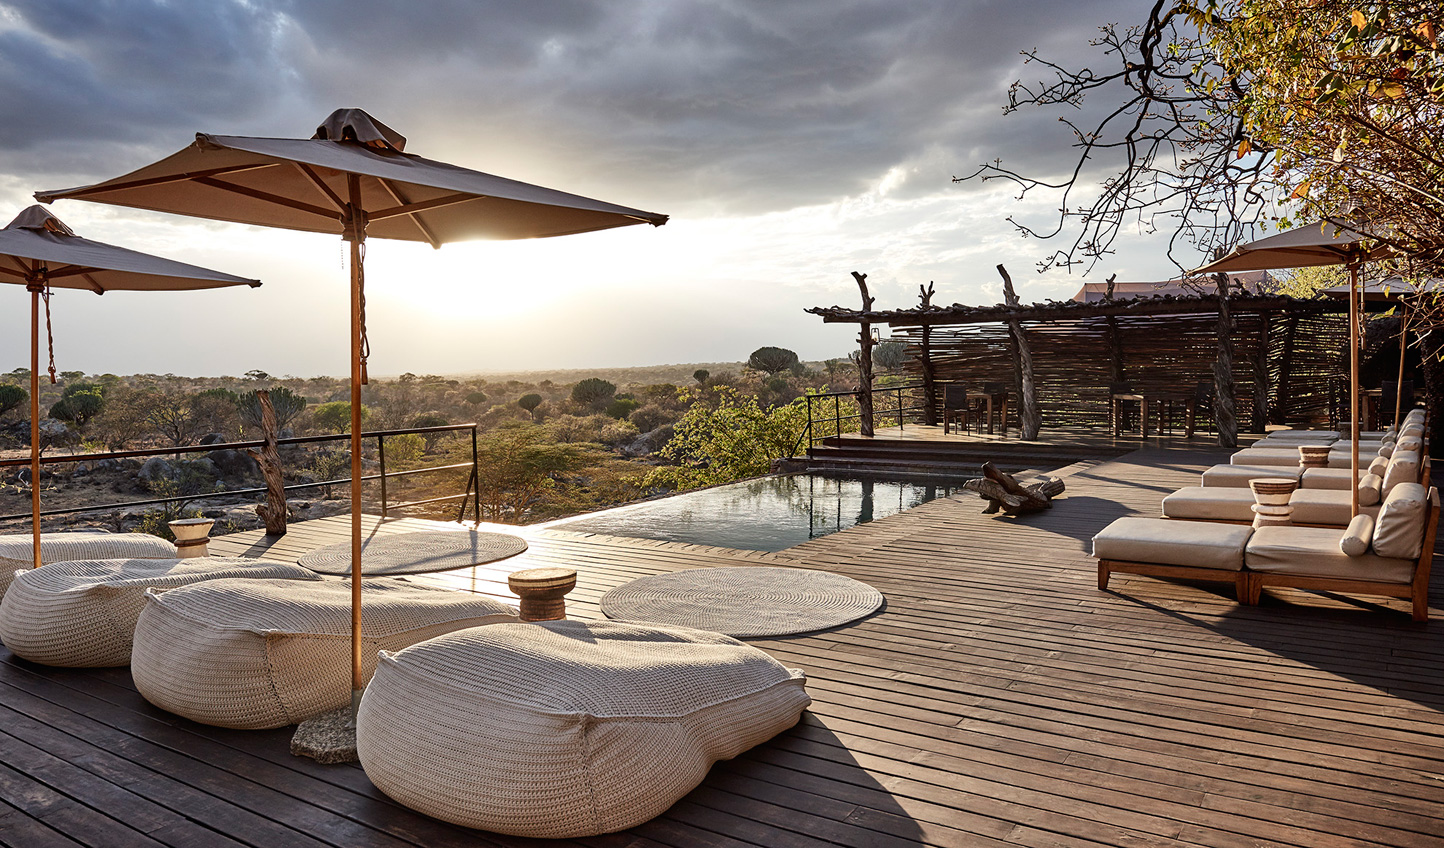 Relax out by the pool and enjoy the view